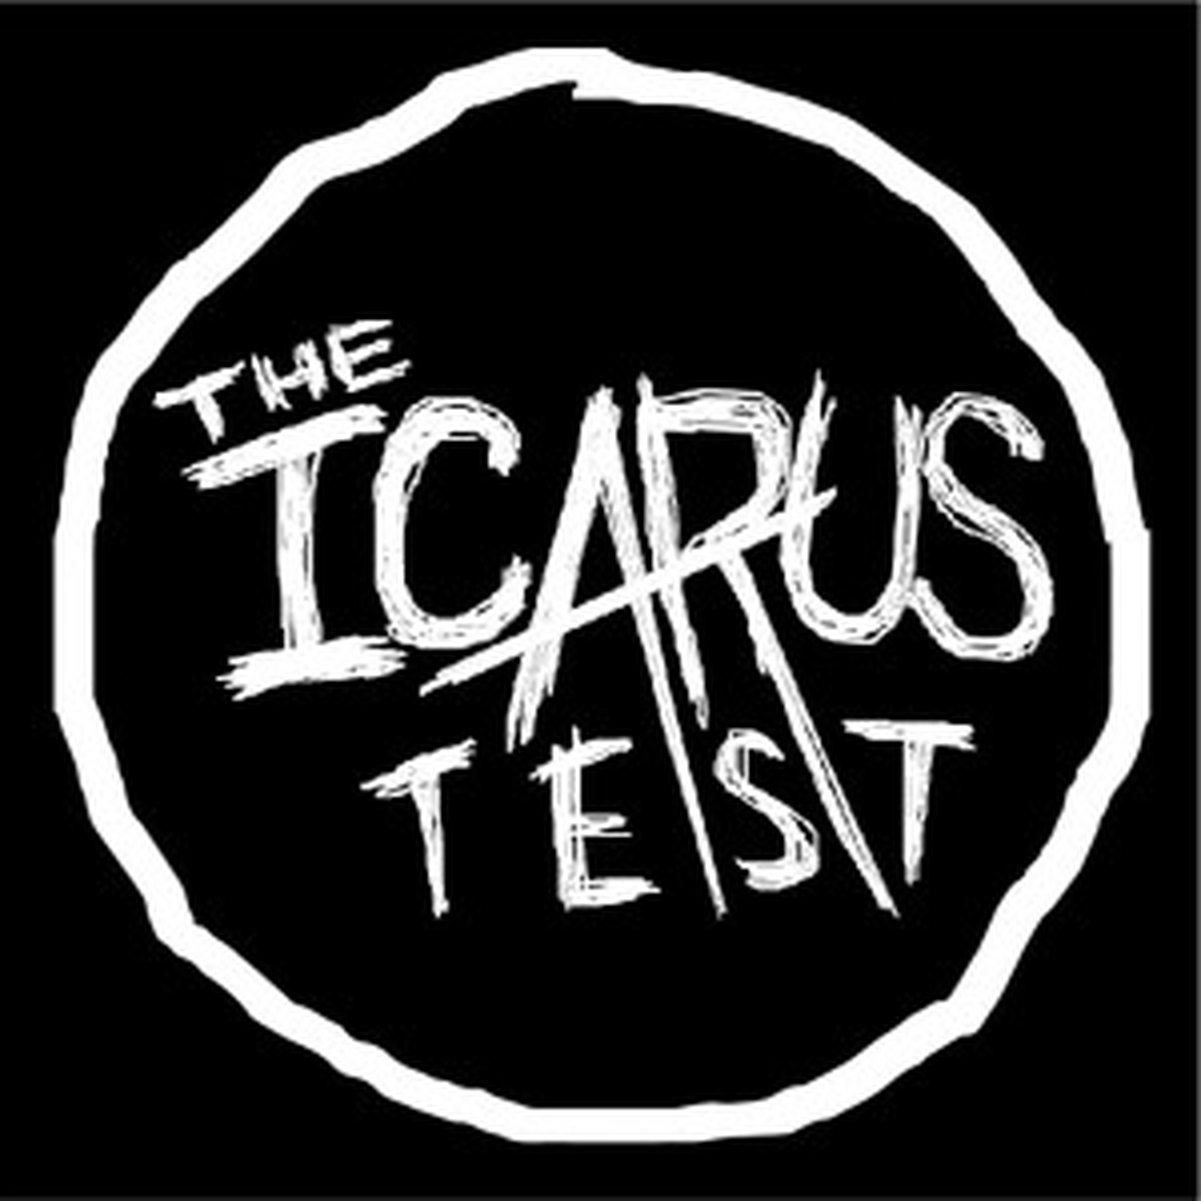 The Icarus Test